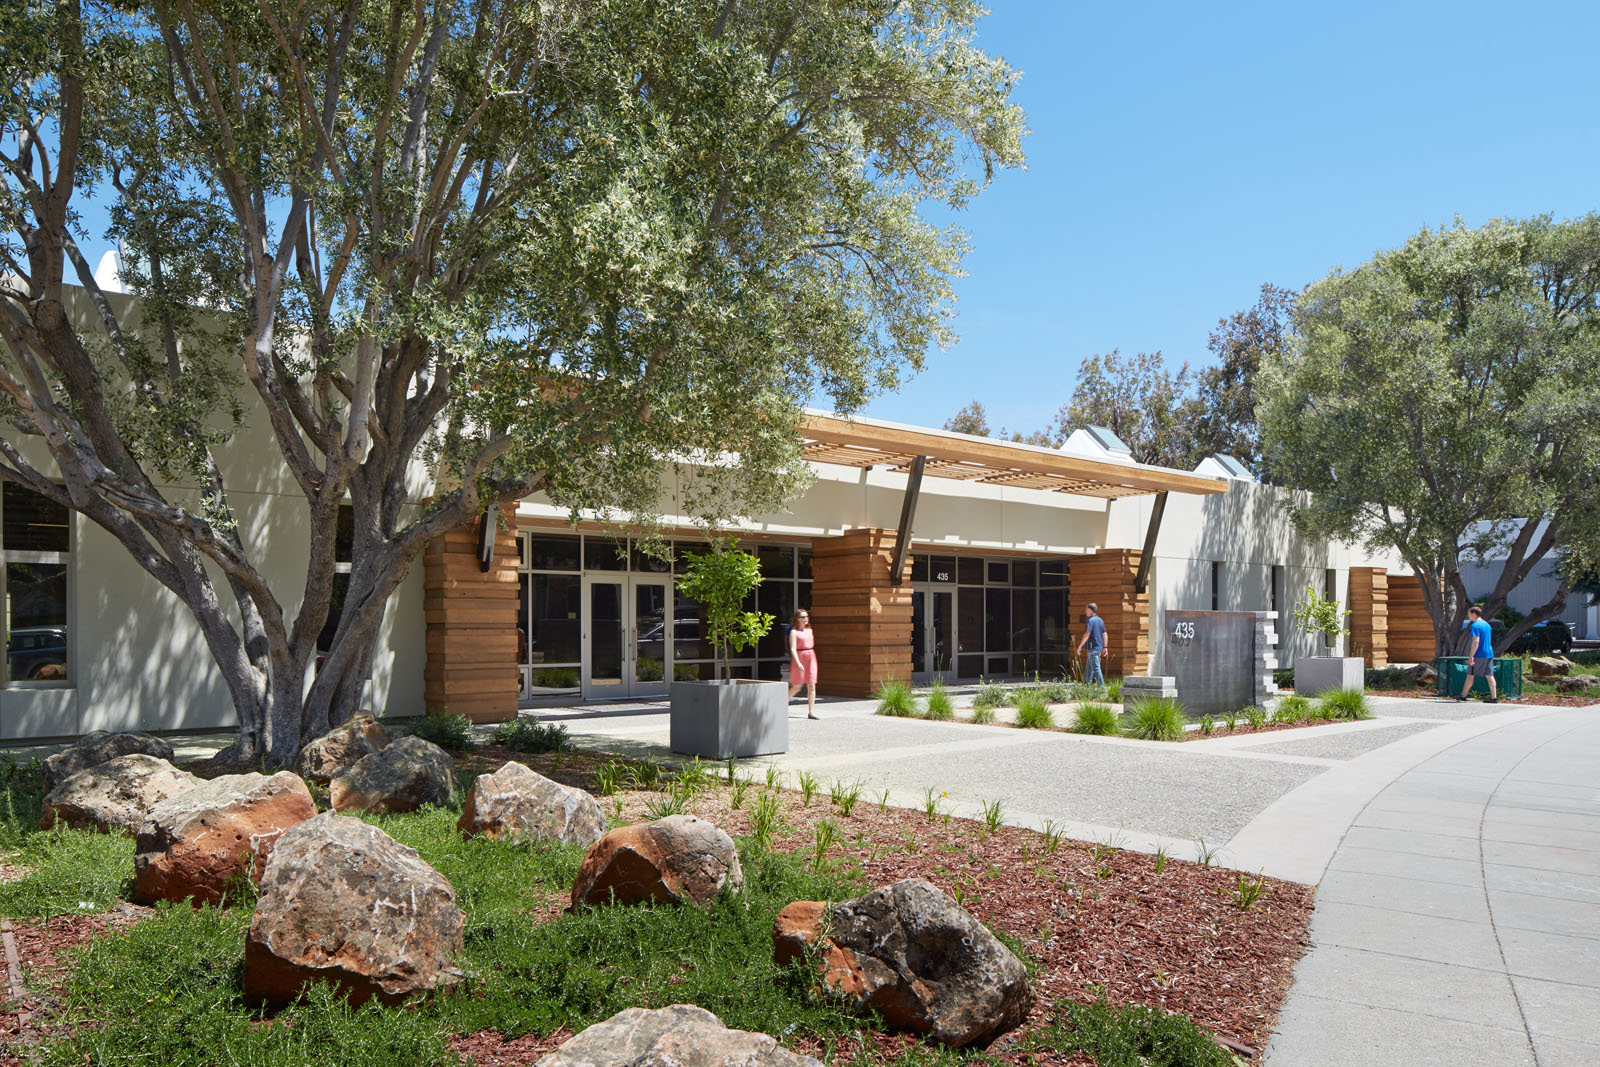 GreenBiz Names 435 Indio One of Five Game-Changing Green Buildings of 2014